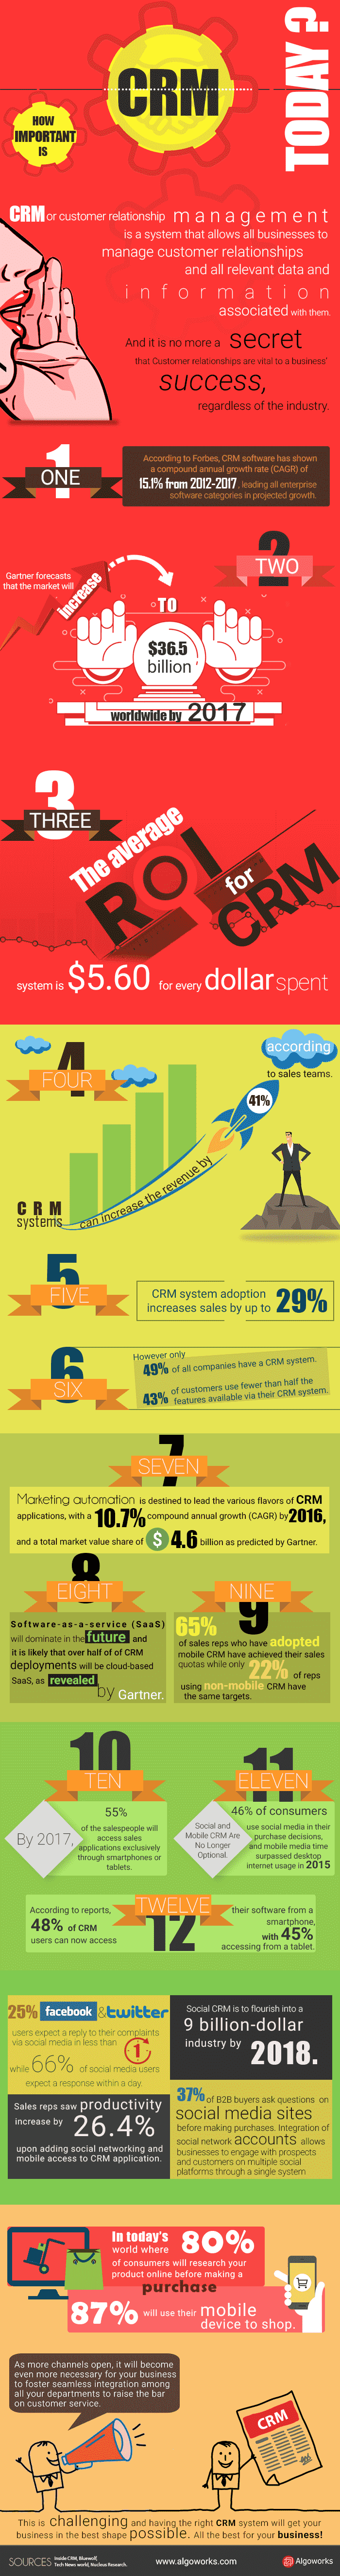 How Important Is CRM Today? | An Infographic